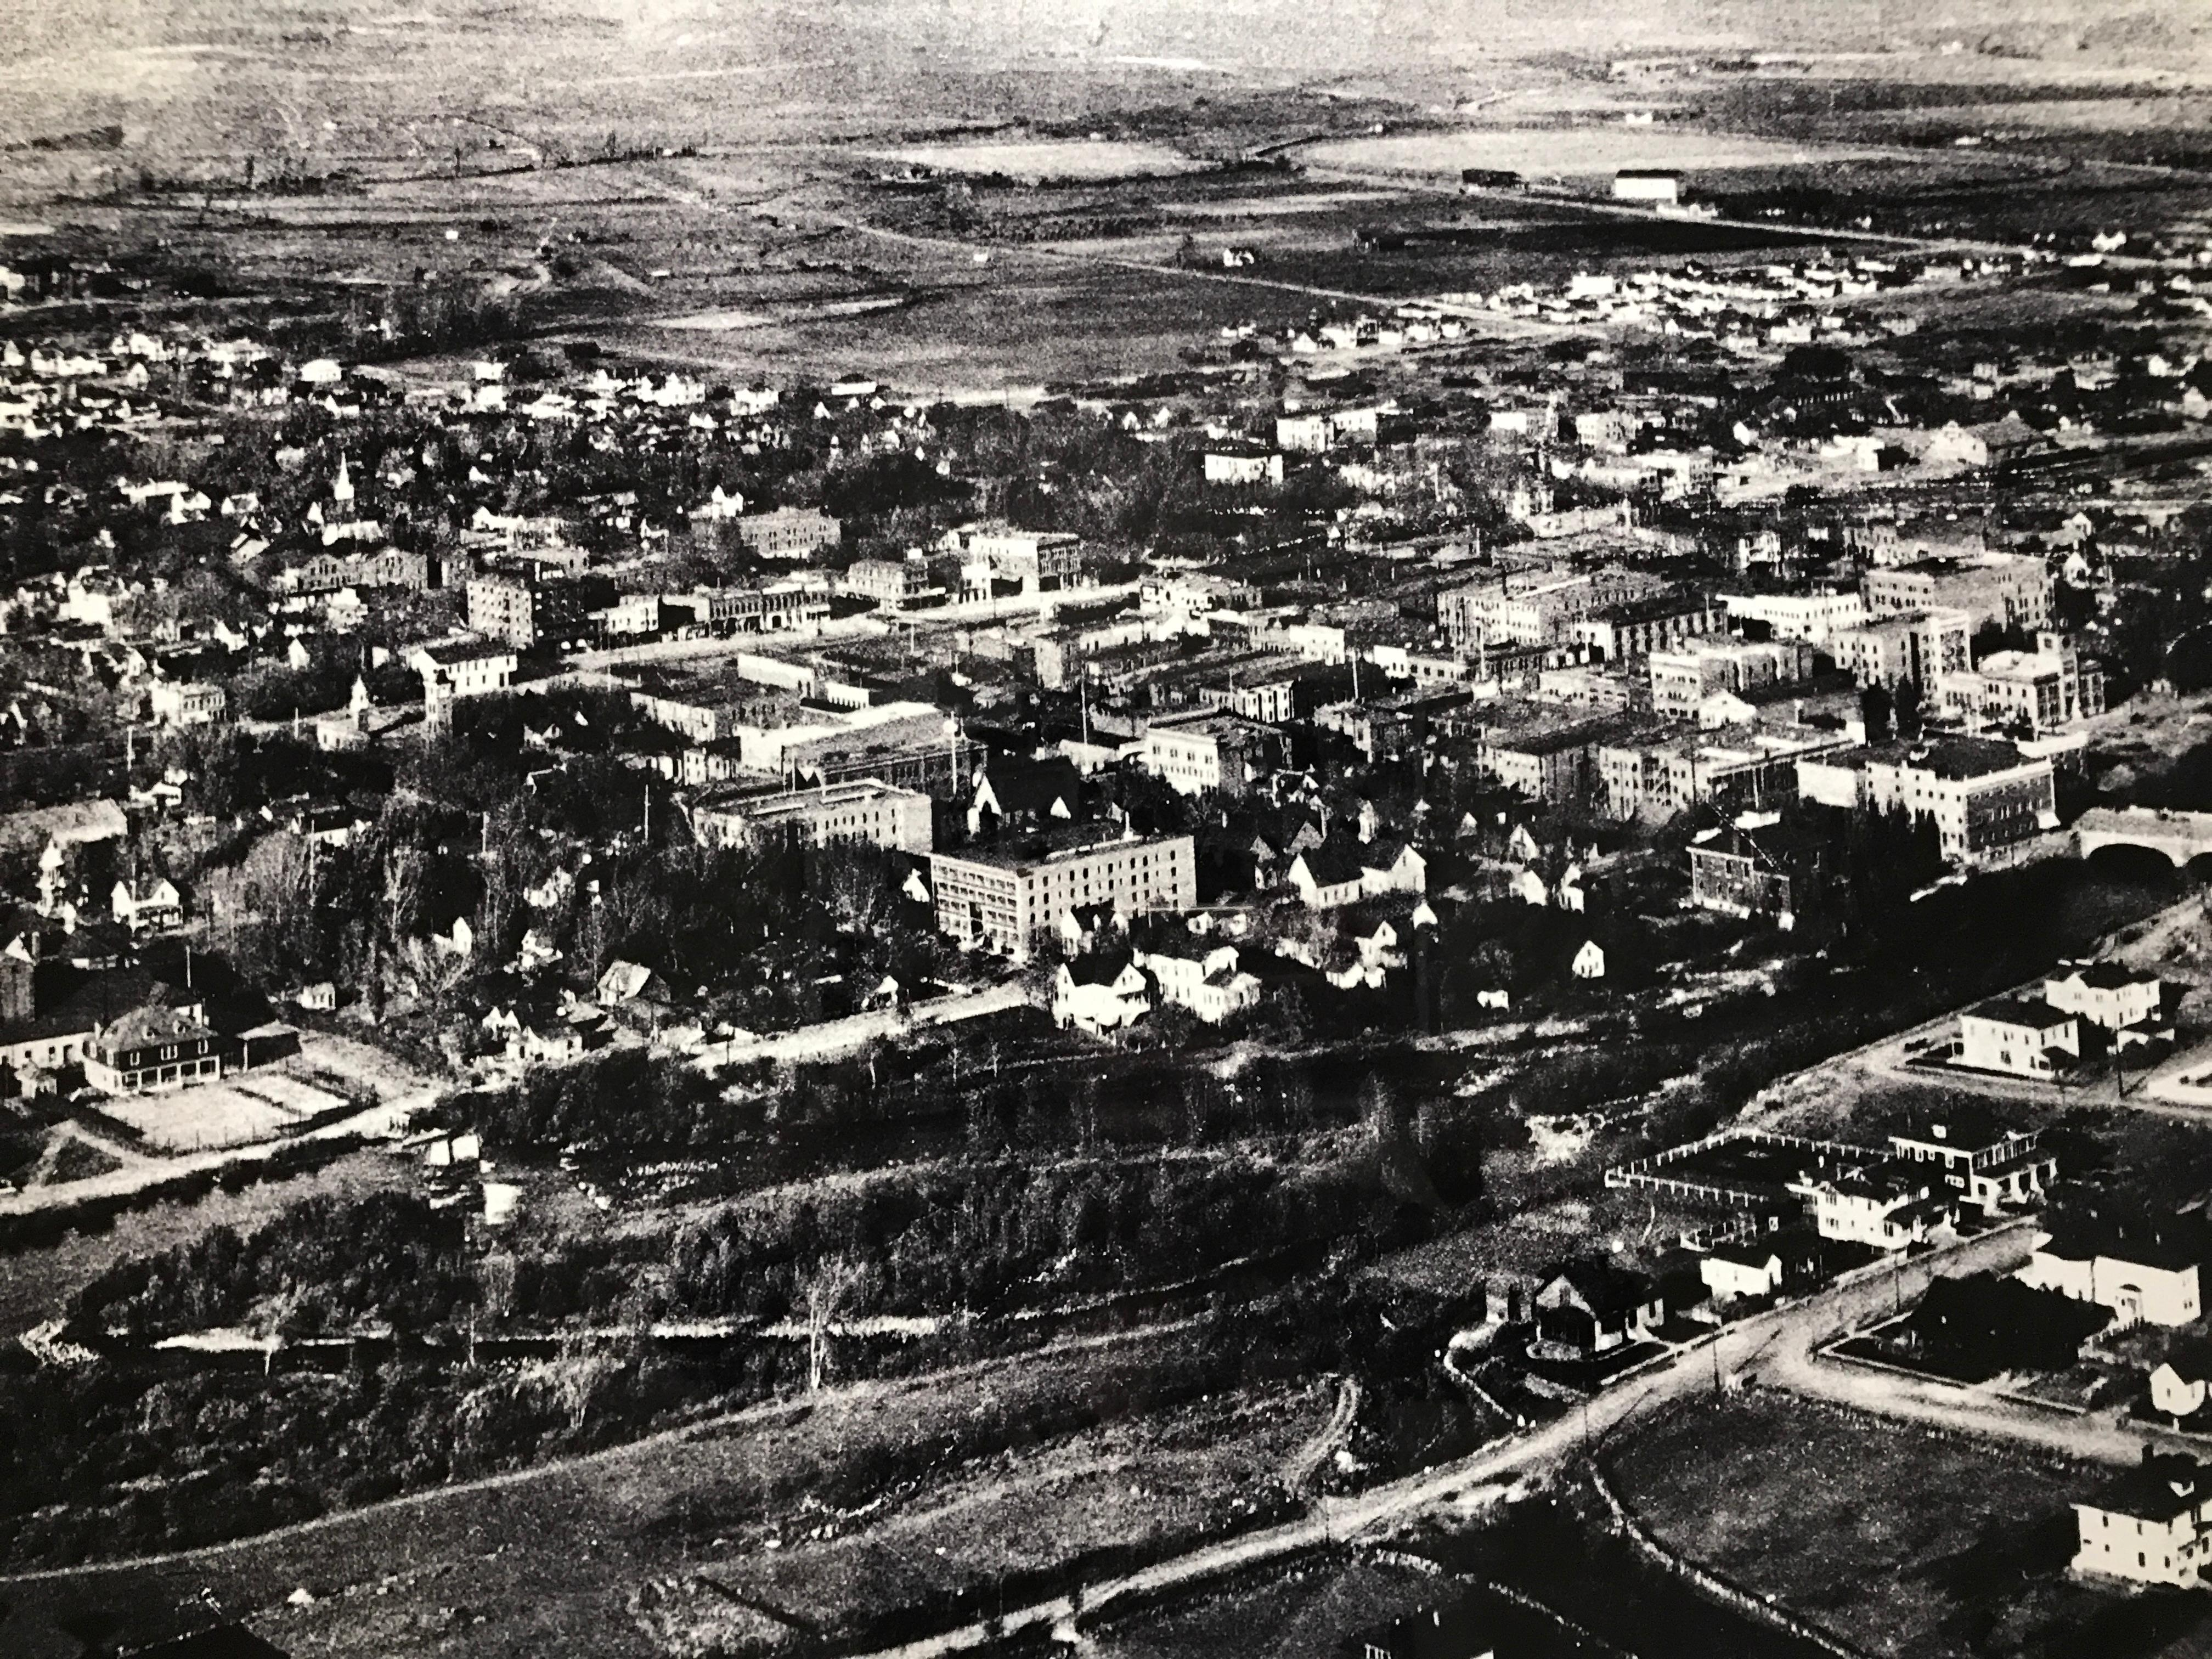 The central part of 1908 Reno is shown with this aerial photograph by George Lawrence -- famous for his San Francisco earthquake photograph -- done with a system of kits flying at 1,000 feet holding a 46-pound camera. Lawrence positioned the camera with its 22-inch by 55-inch roll of film above the ground on the kite cable. From 600 feet to 1,000 feet, box kites were spaced 50 feet apart to maintain the height of the camera. (Photo courtesy, Nevada Historical Society)